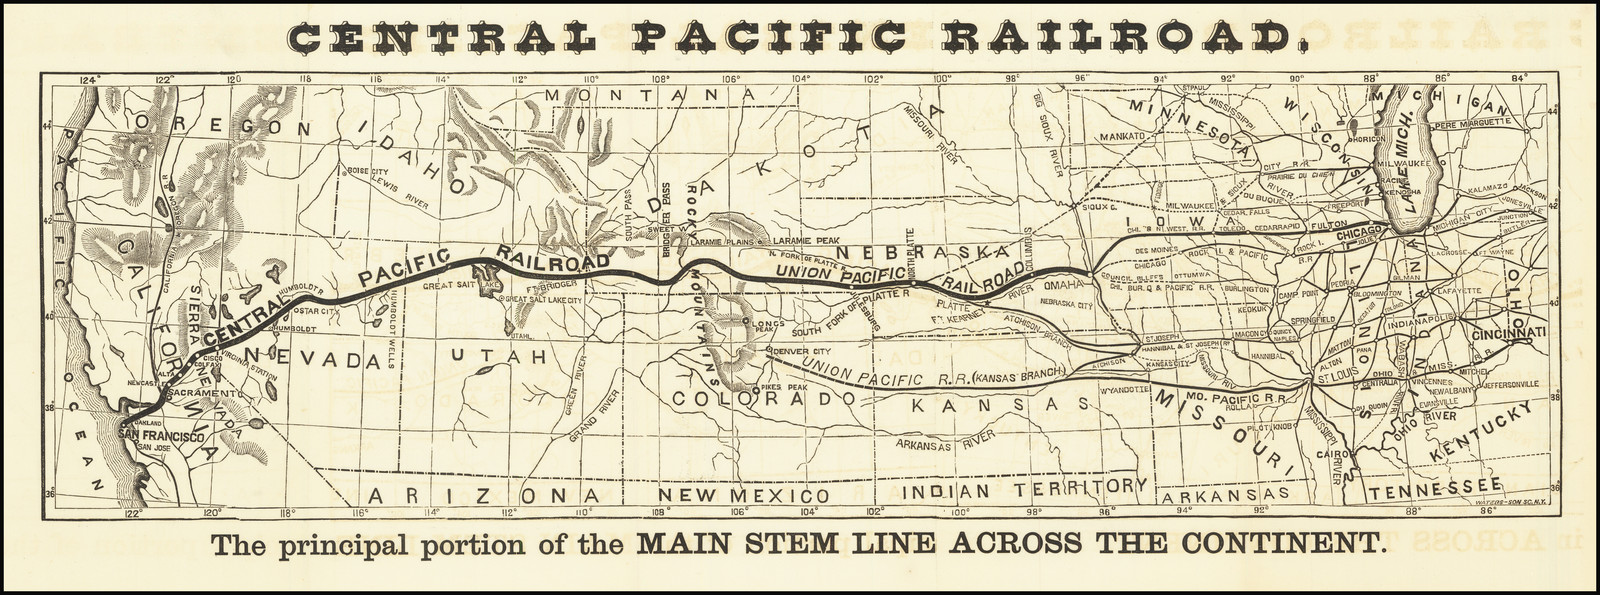 map of central pacific railroad Central Pacific Railroad With Pamphlet Railroad Communication map of central pacific railroad